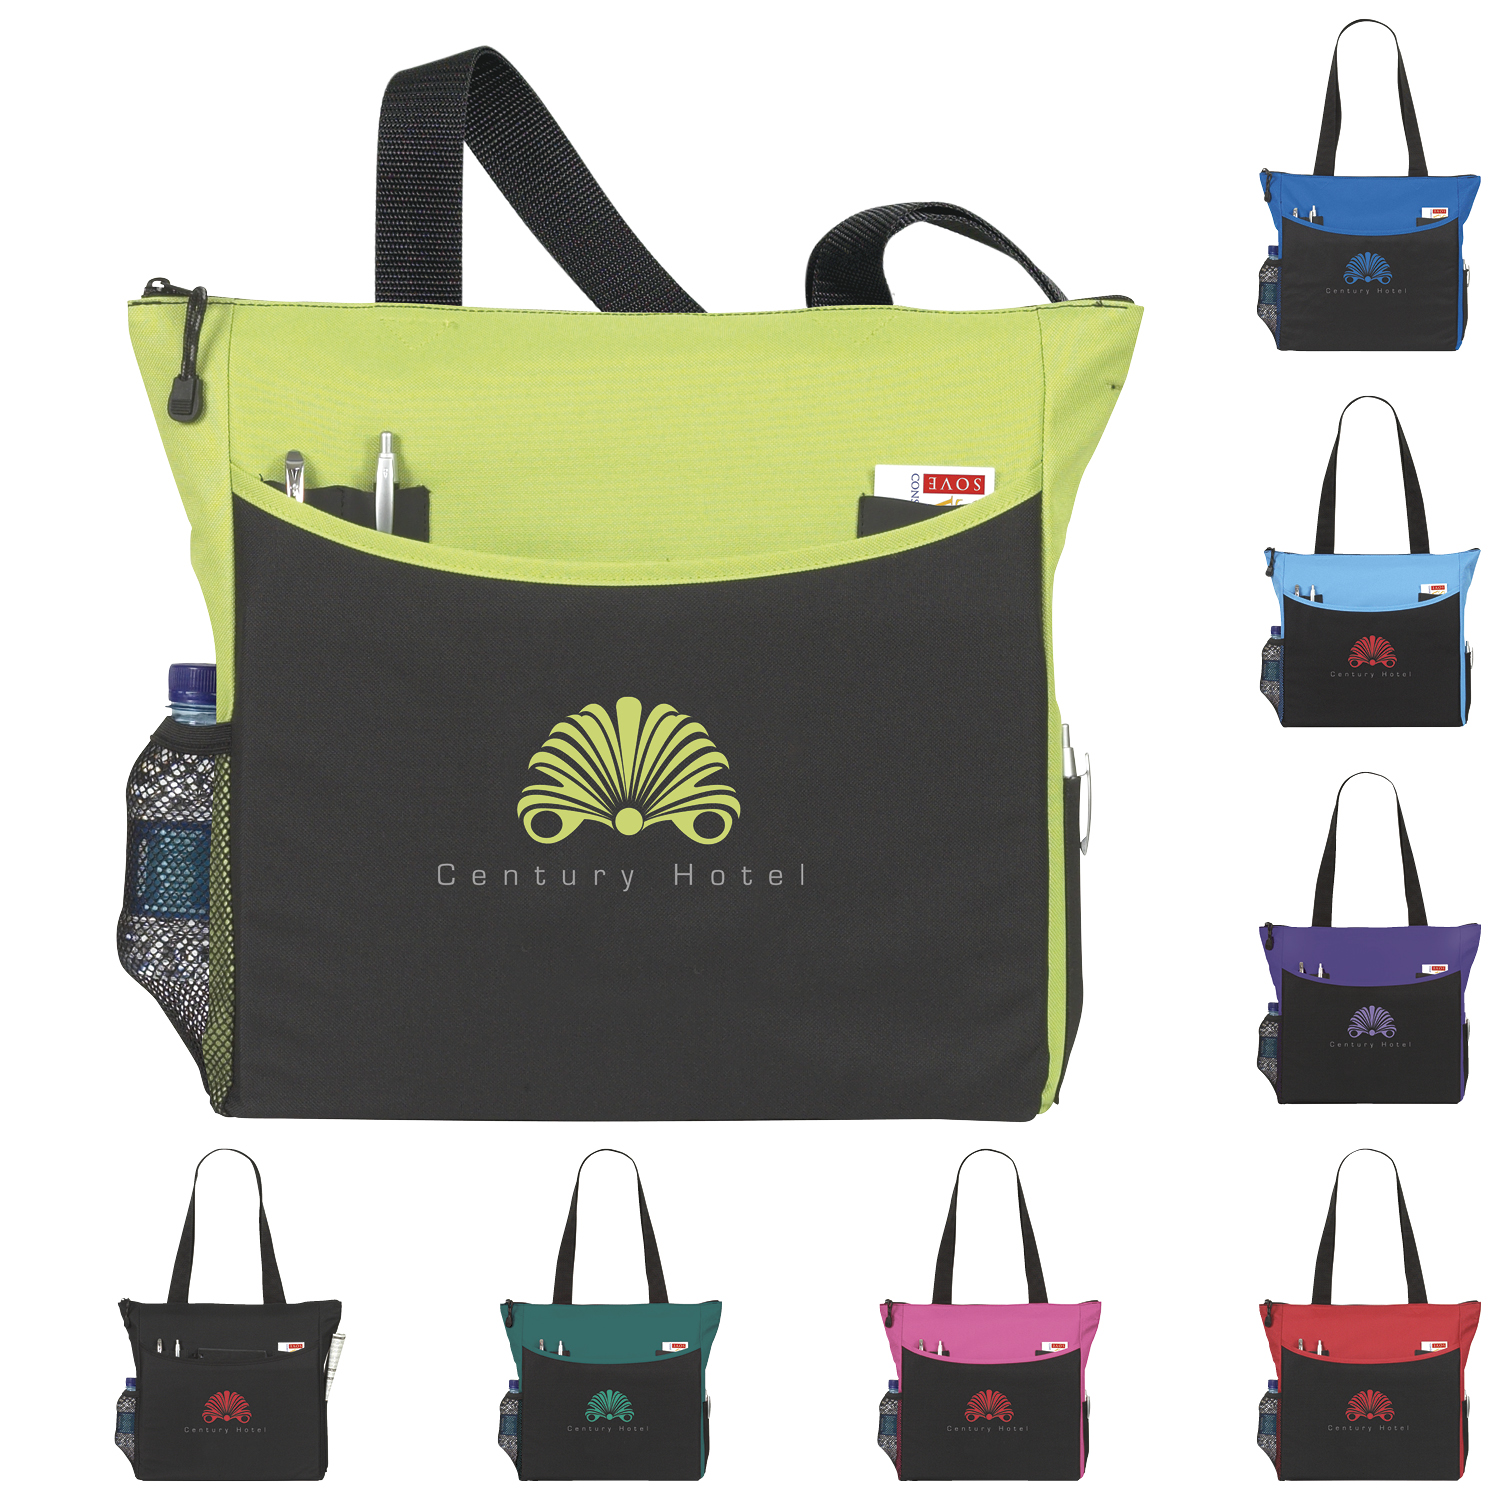 Atchison TranSport It Tote Bag - 1 Colour Imprint